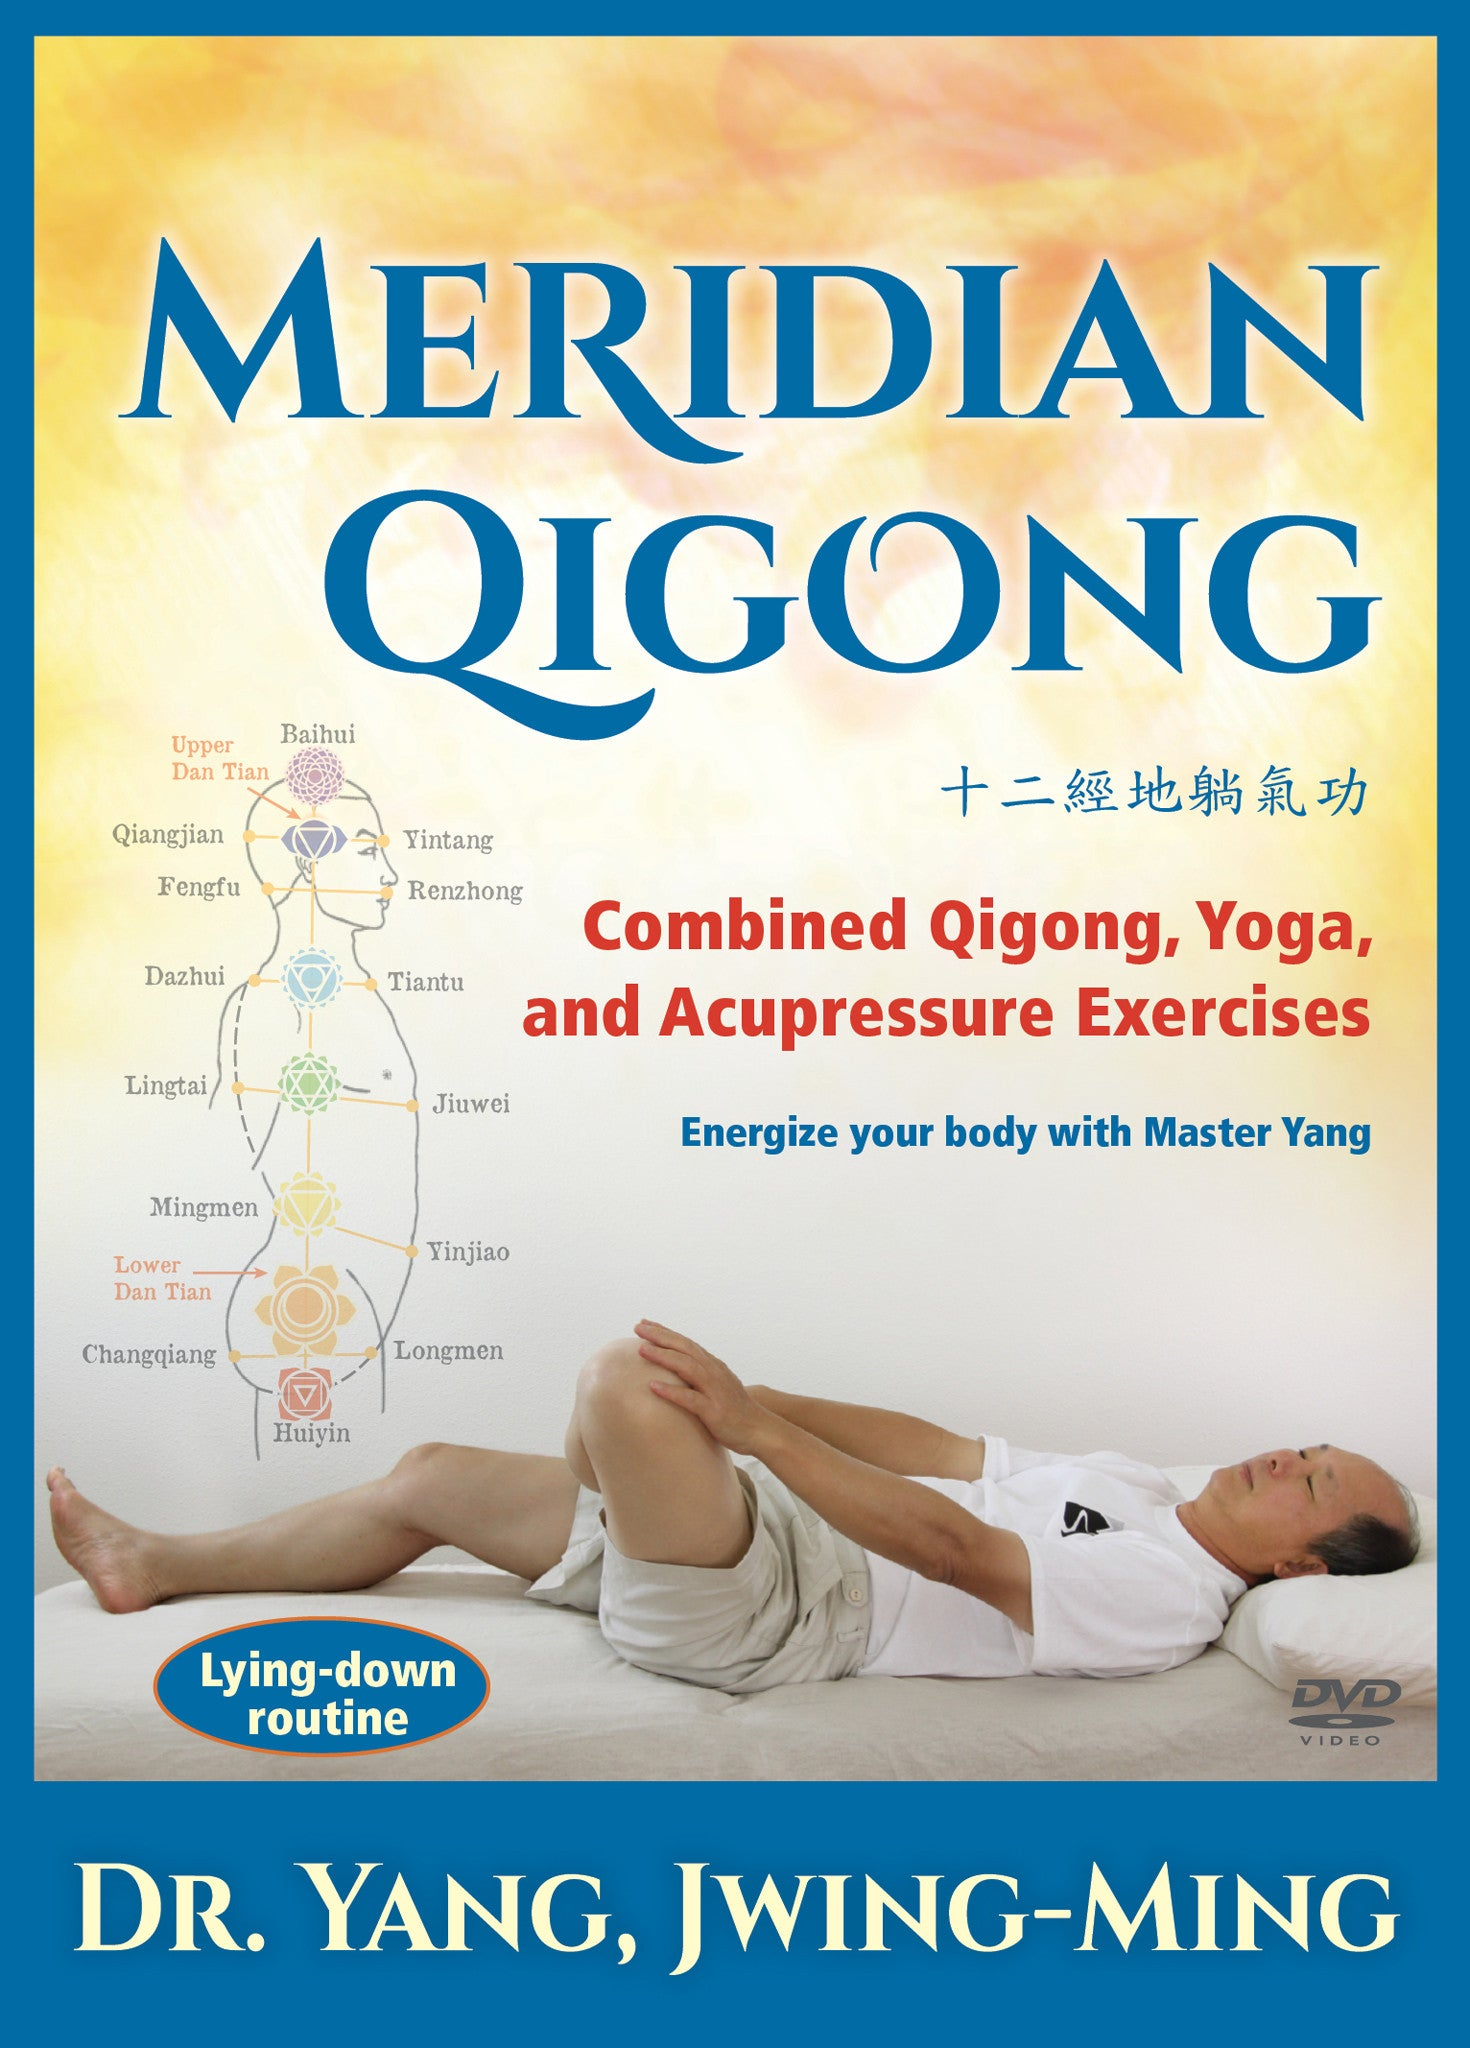 Meridian Qigong DVD by Dr. Yang, Jwing-Ming - Budovideos